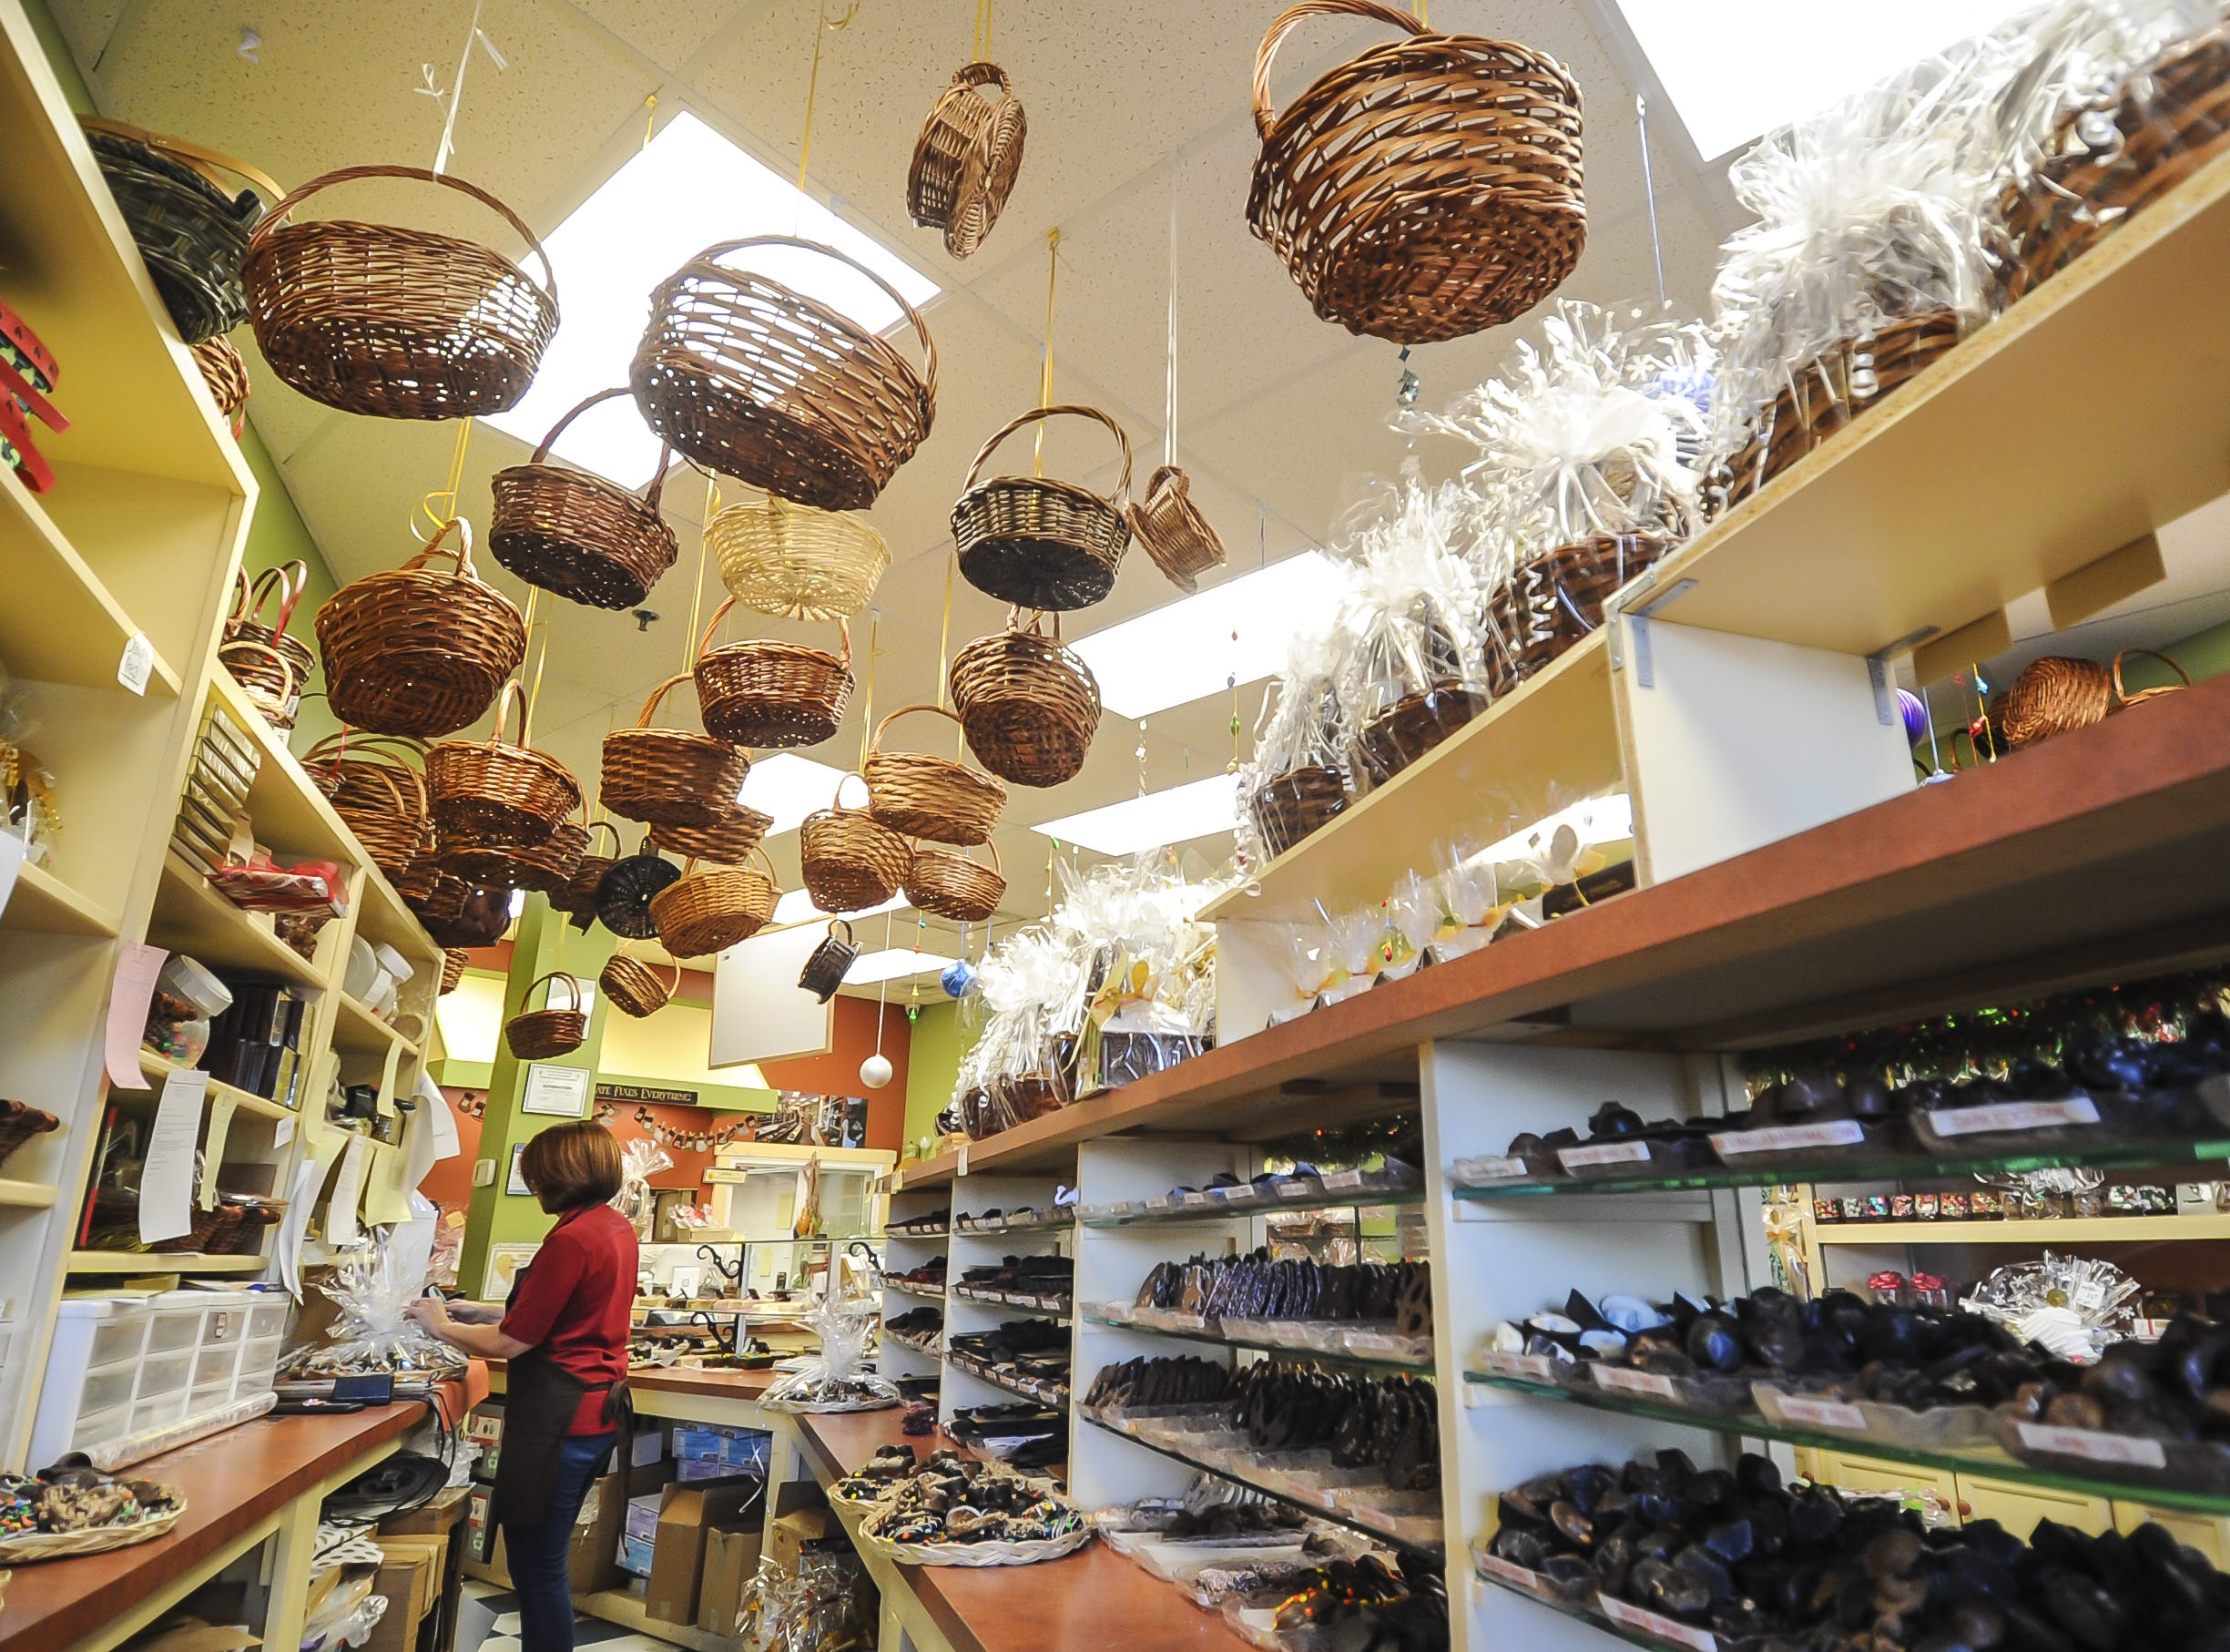 Baskets hang at Suzi's Sweet Shoppe, a Middletown family-owned business. The family-owned business offers hand-dipped chocolates, gift baskets, party favors, and homemade fudge.